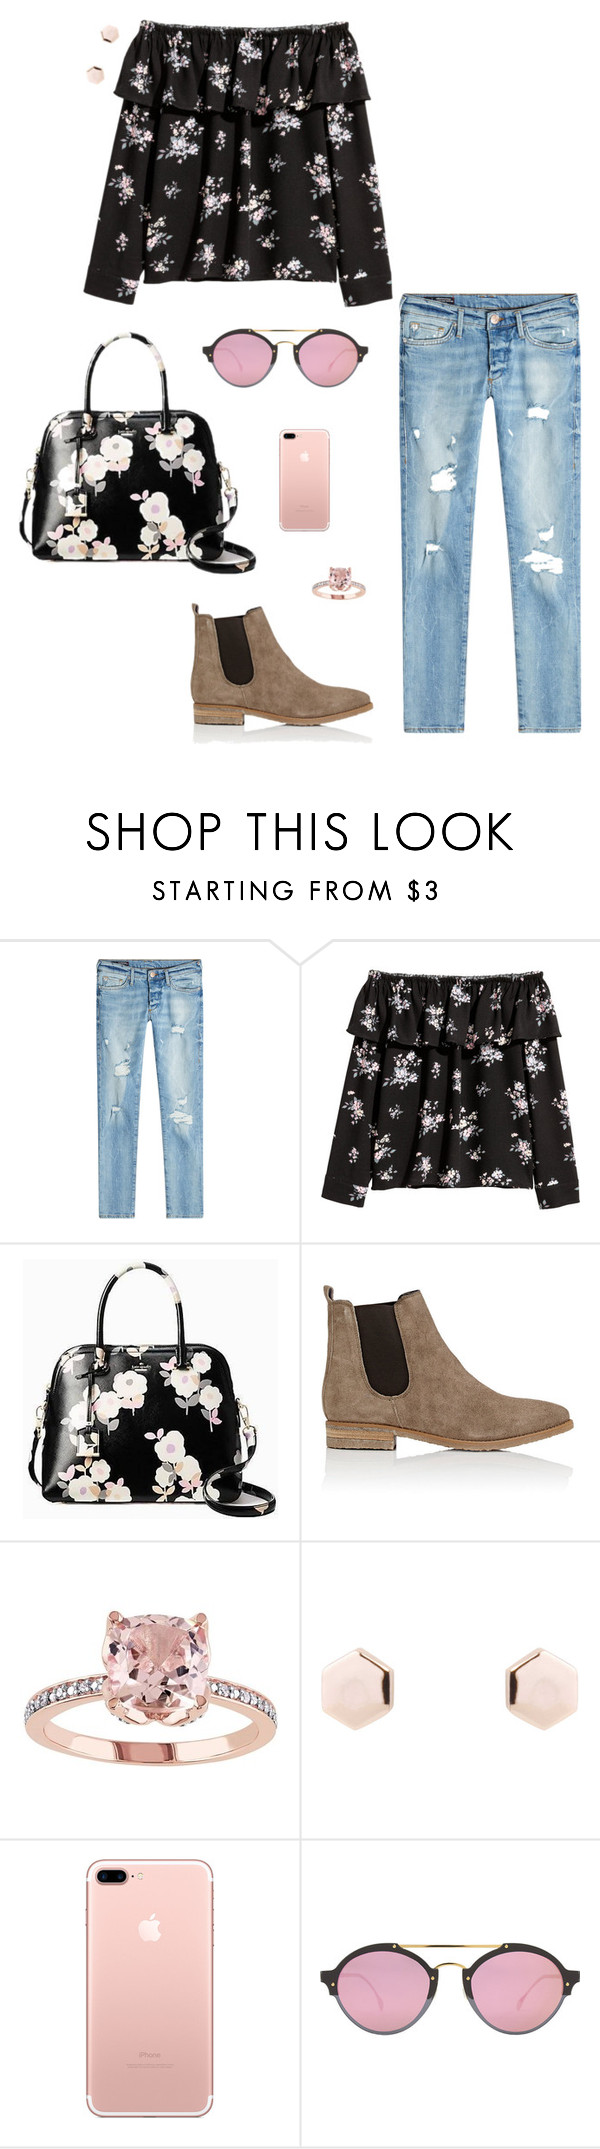 """""""Darling Flowers"""" by walzfashion ❤ liked on Polyvore featuring True Religion, Kate Spade, Barneys New York and Illesteva"""